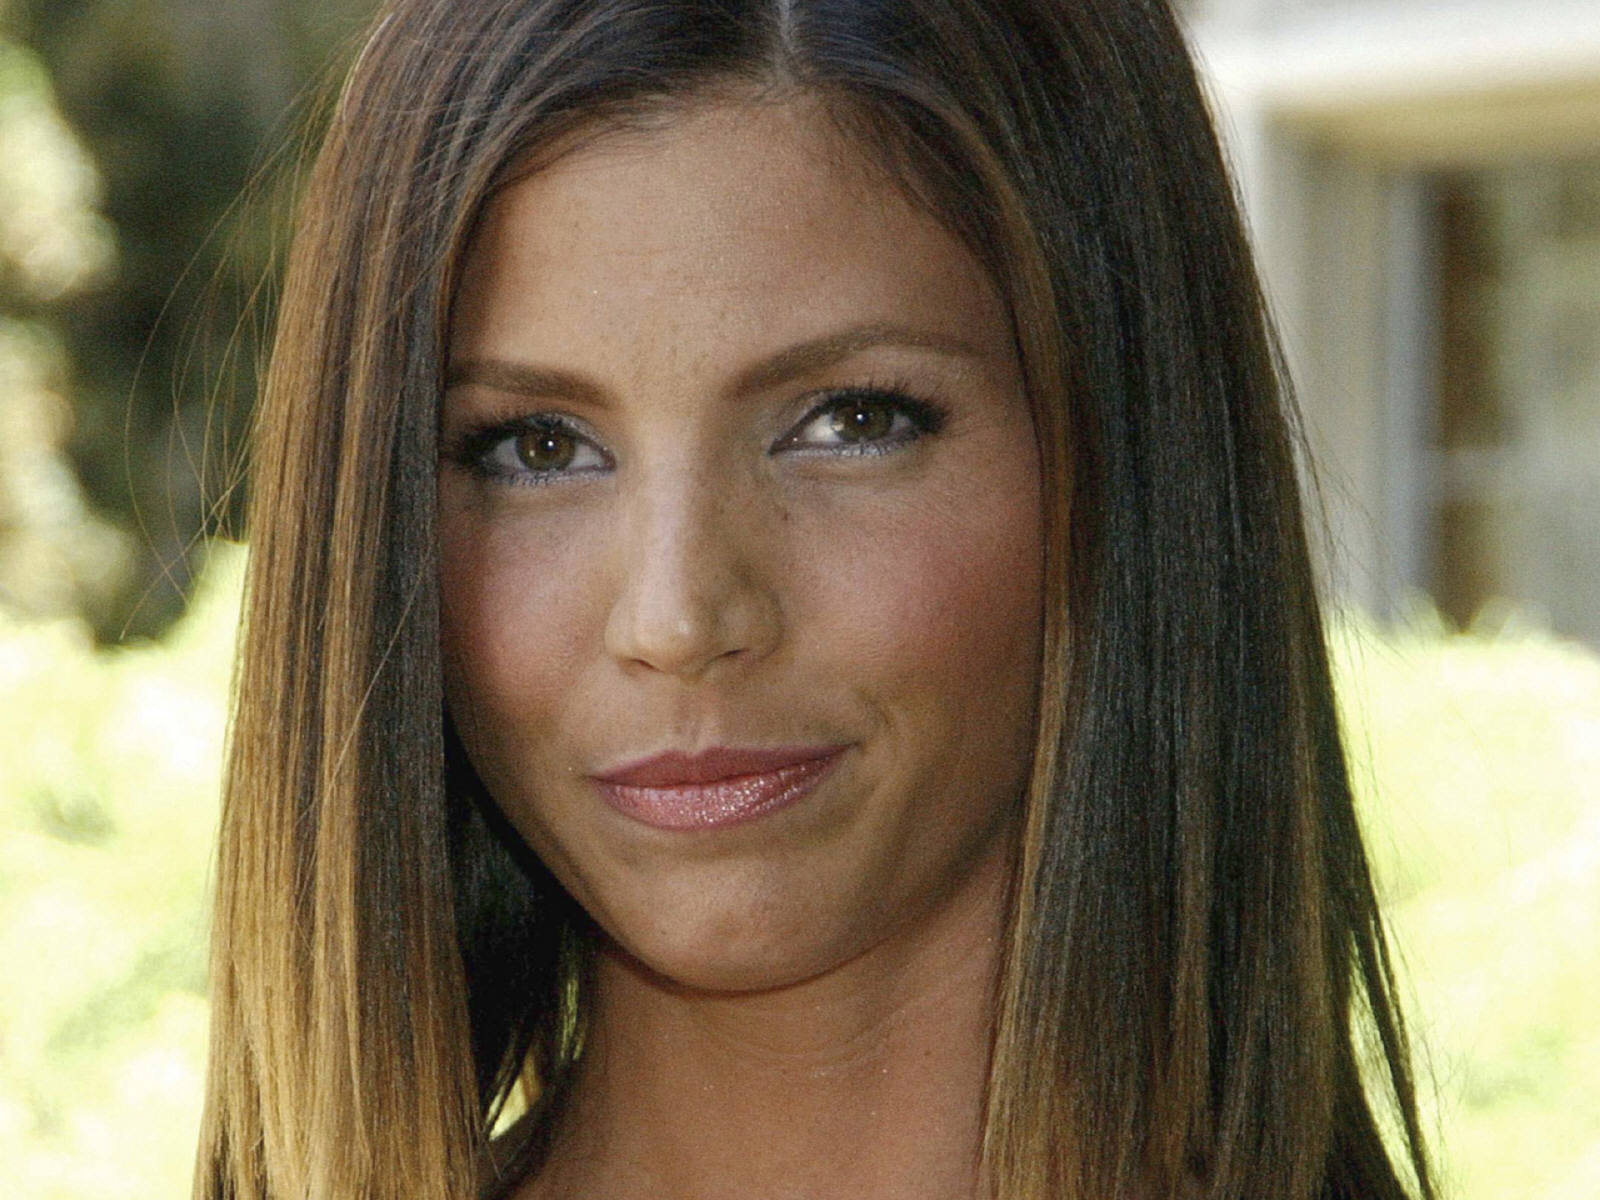 Cleavage Charisma Lee Carpenter naked (33 foto and video), Ass, Paparazzi, Boobs, butt 2019